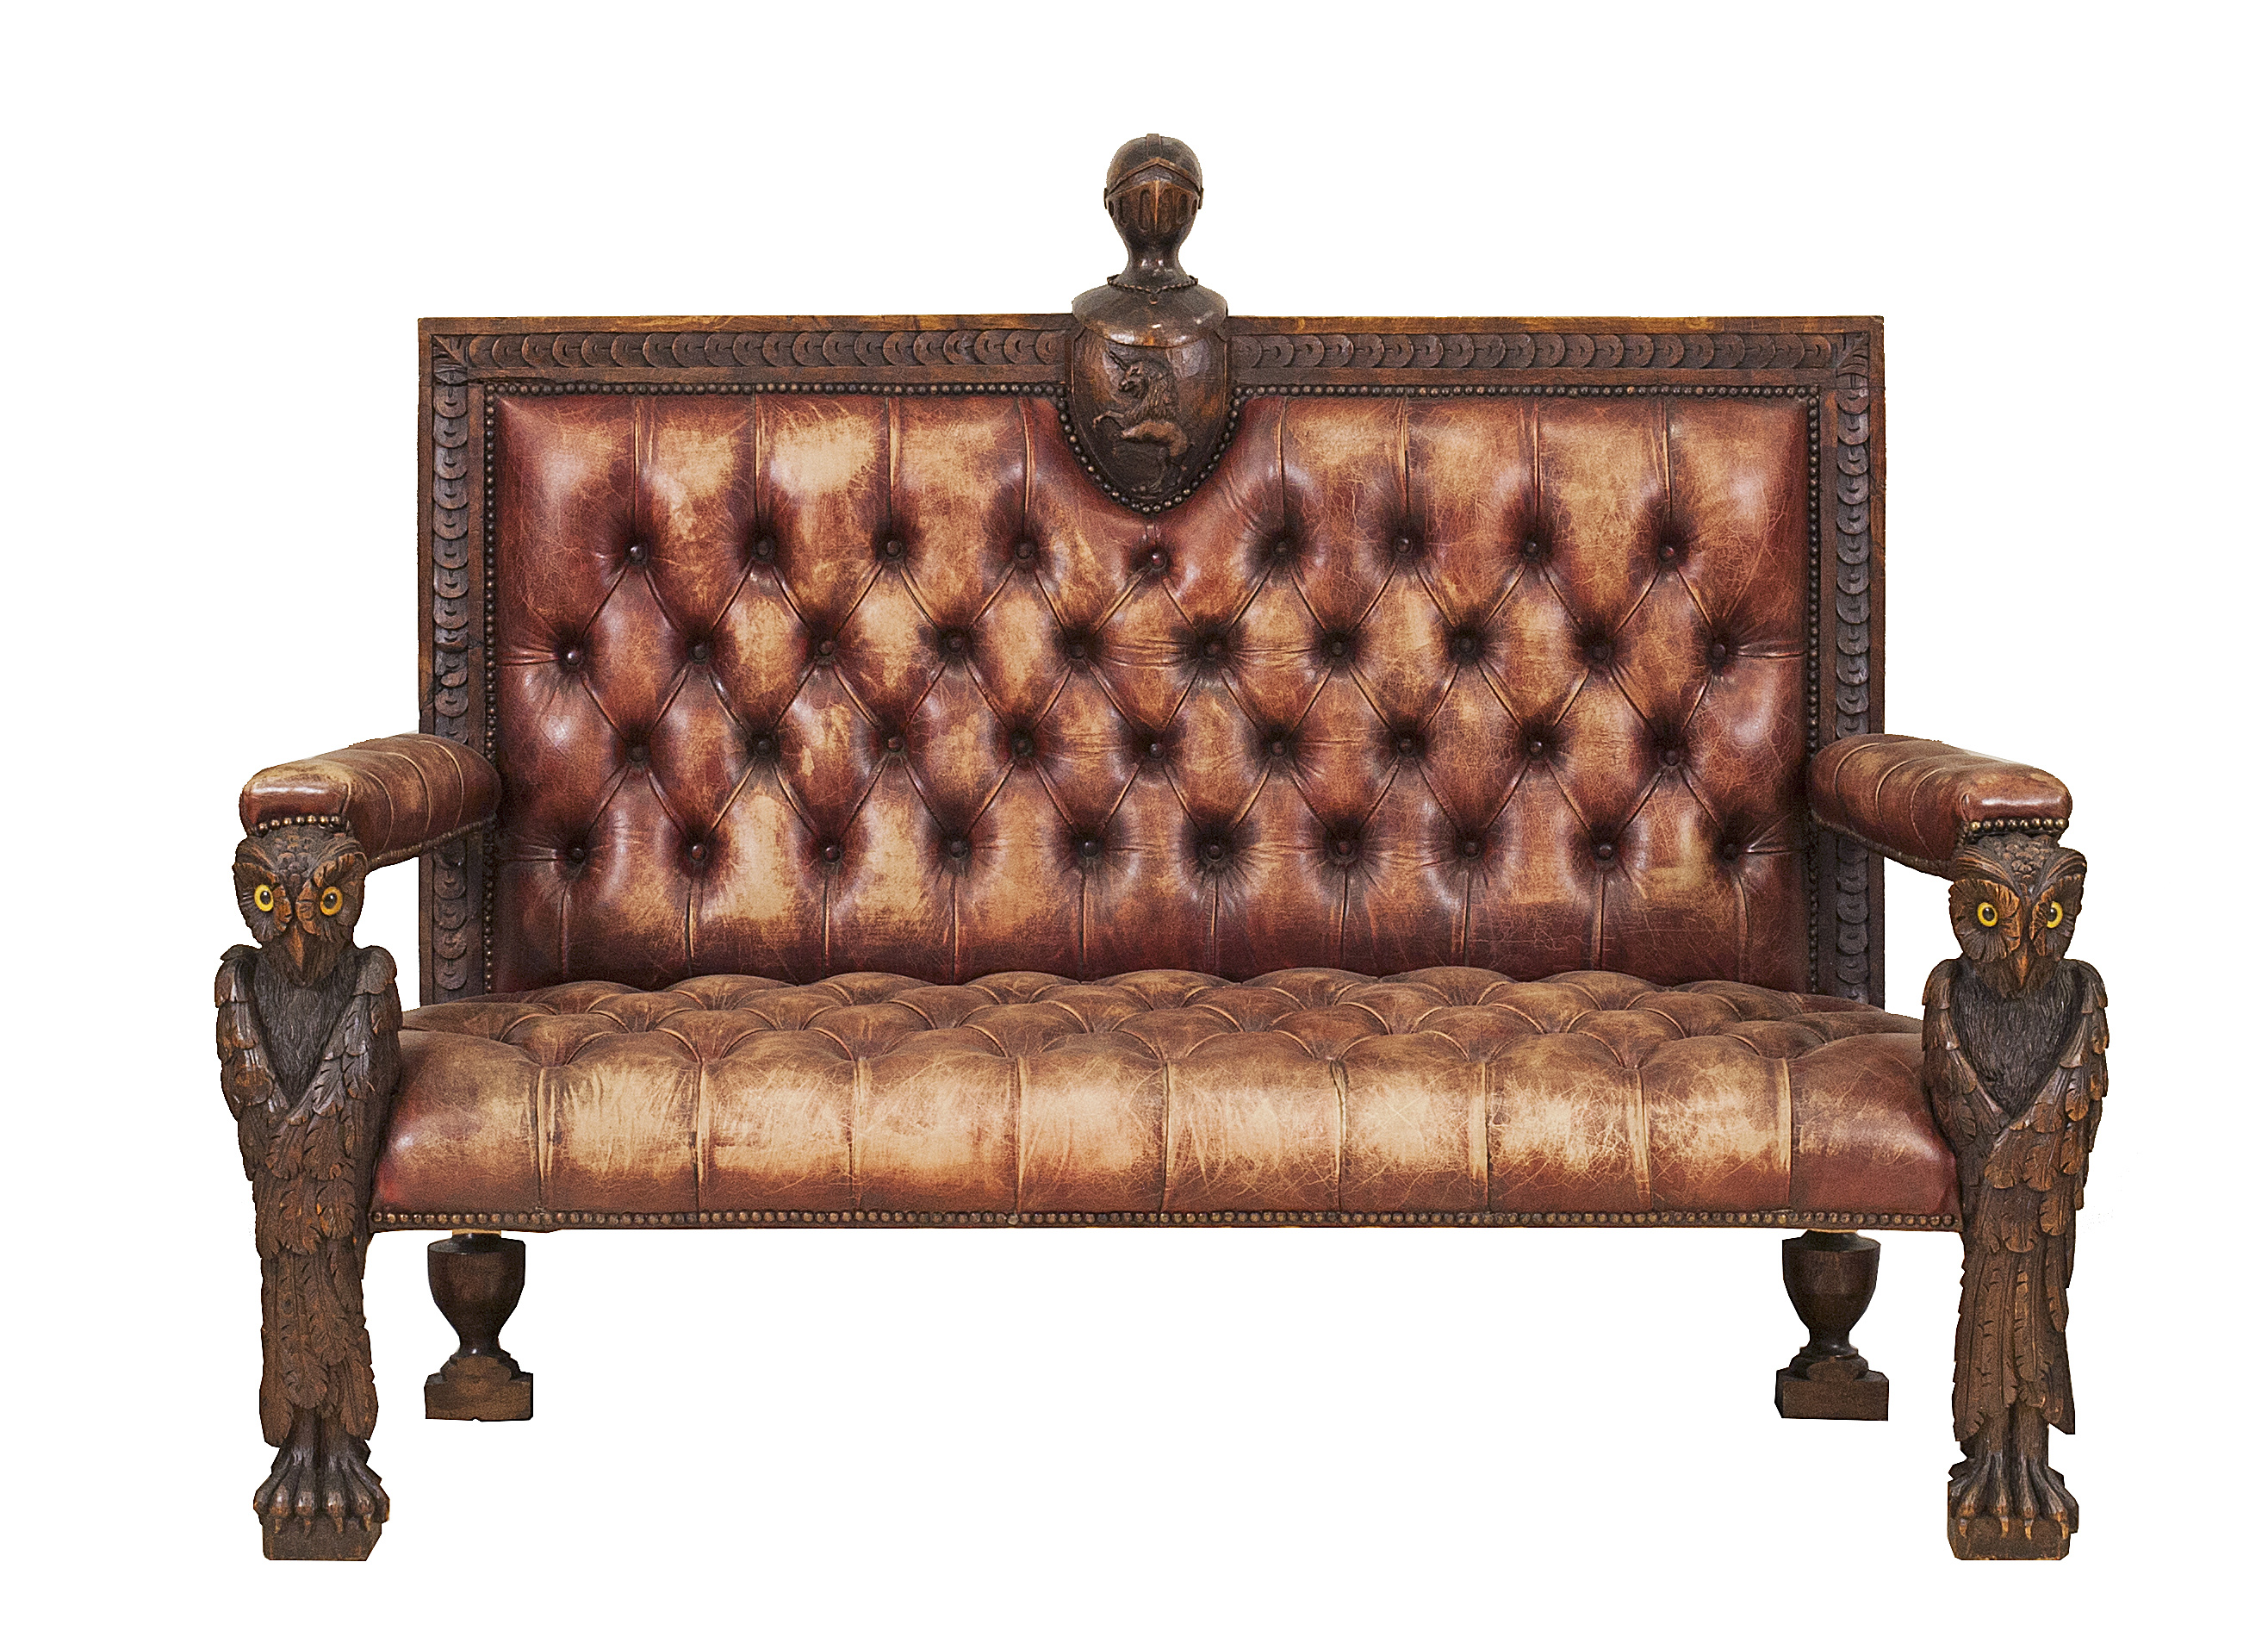 Phenomenal Rustic Continental Walnut And Leather Loveseat 1 Newel Andrewgaddart Wooden Chair Designs For Living Room Andrewgaddartcom